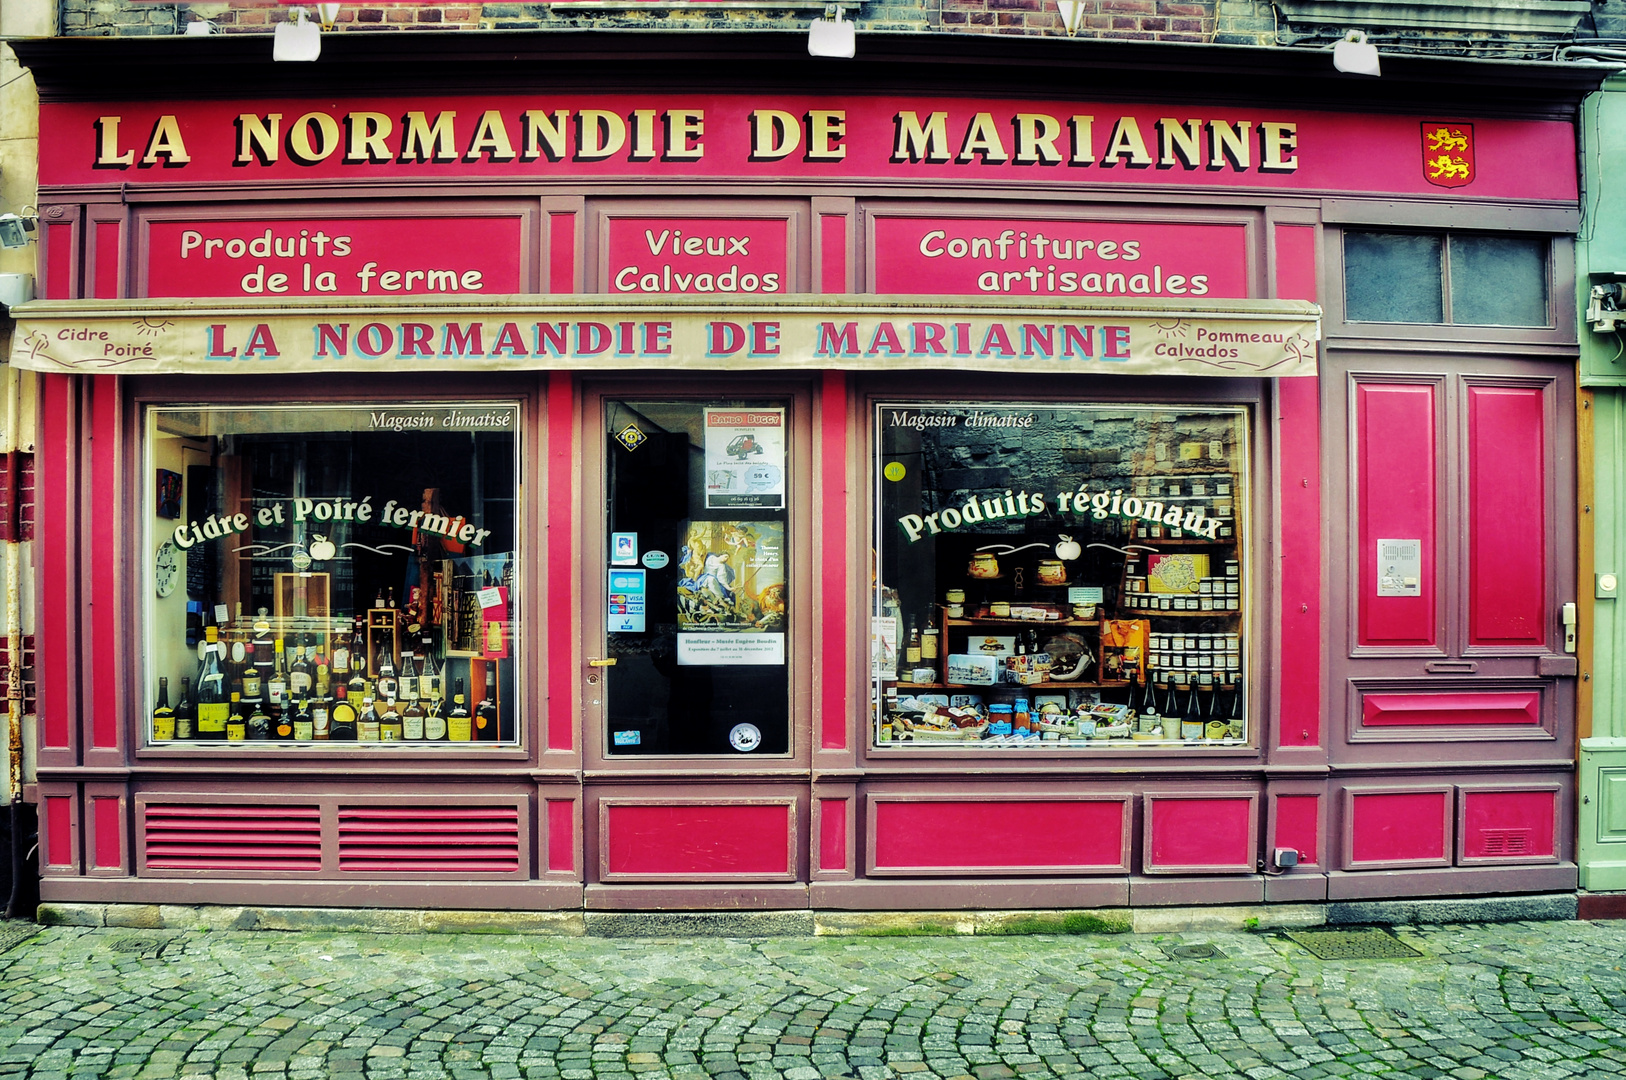 Rouge normand